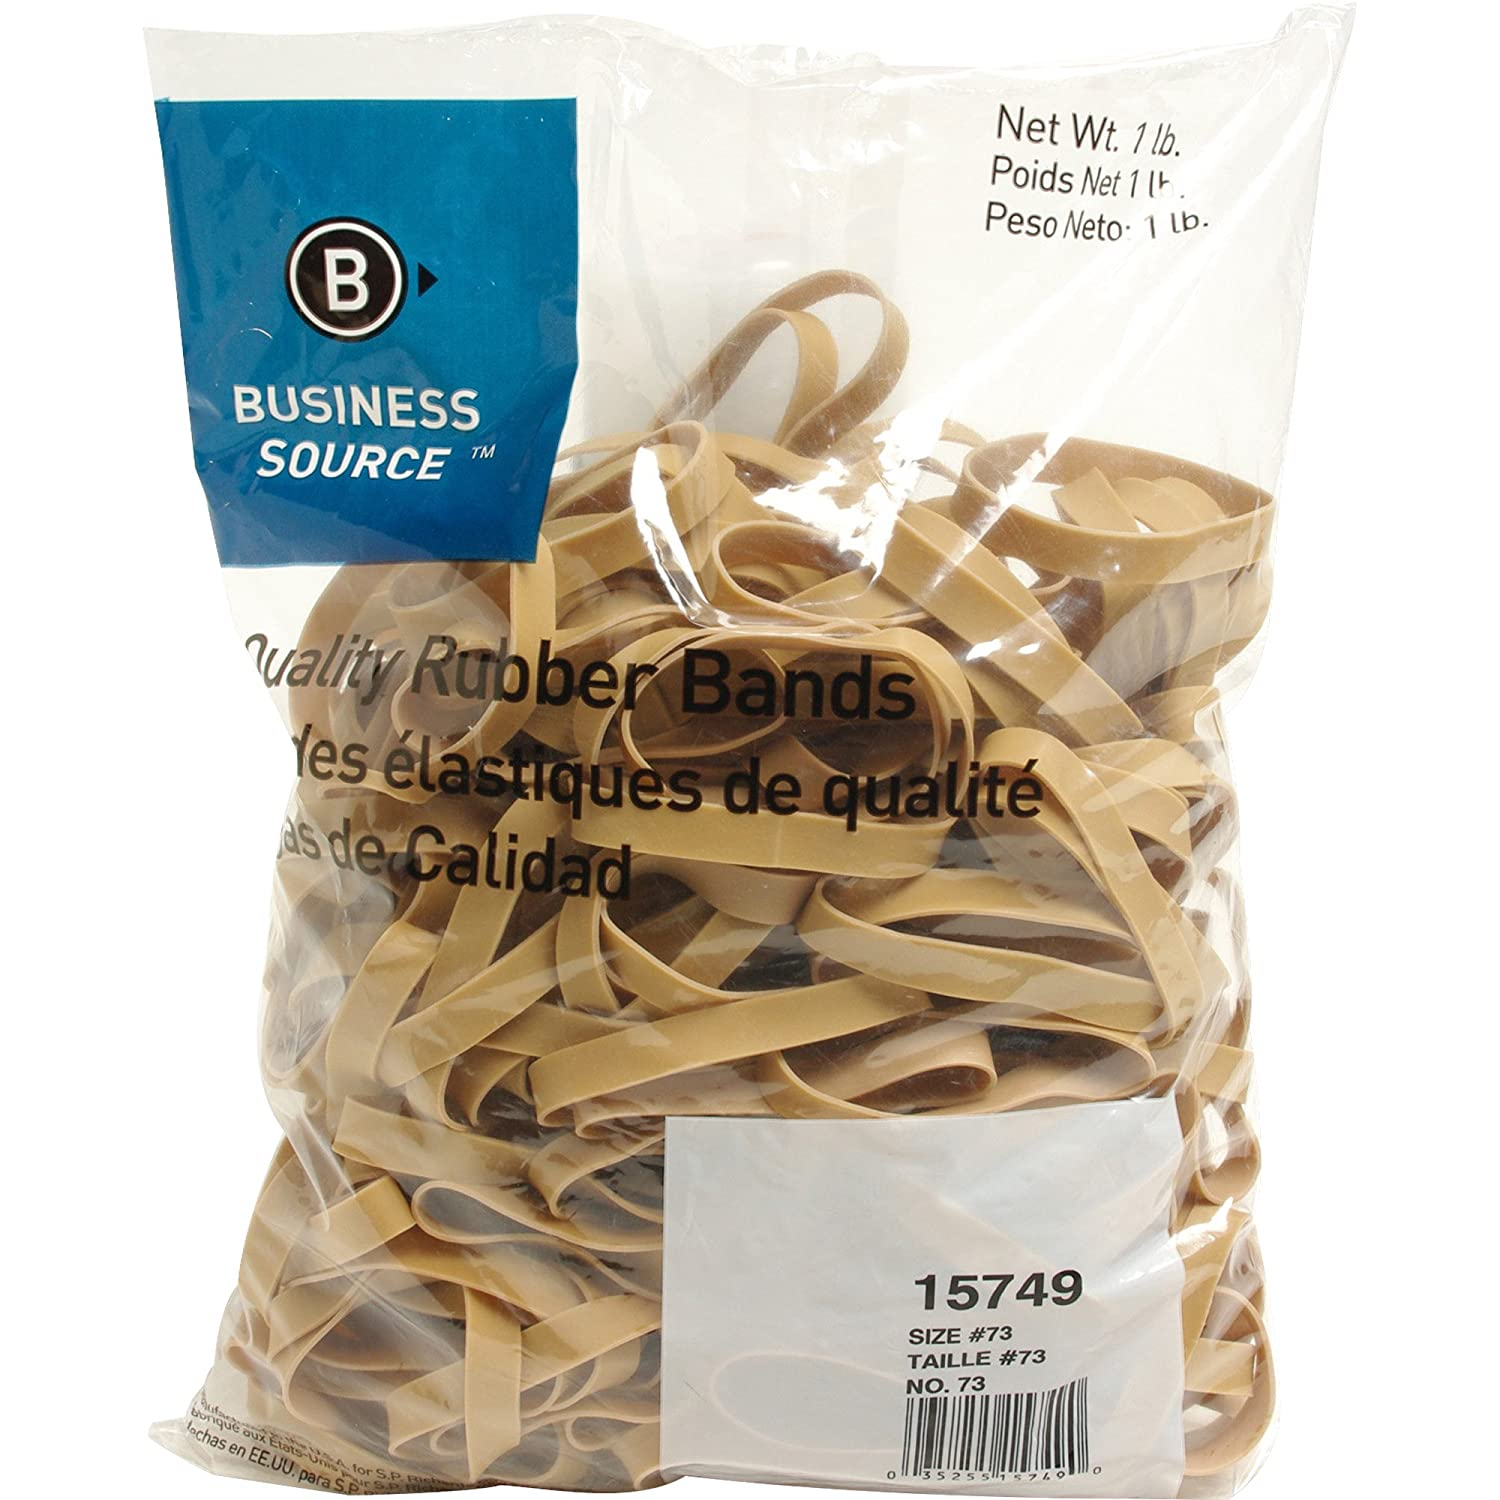 15749 Business Source Size 73 Rubber Bands